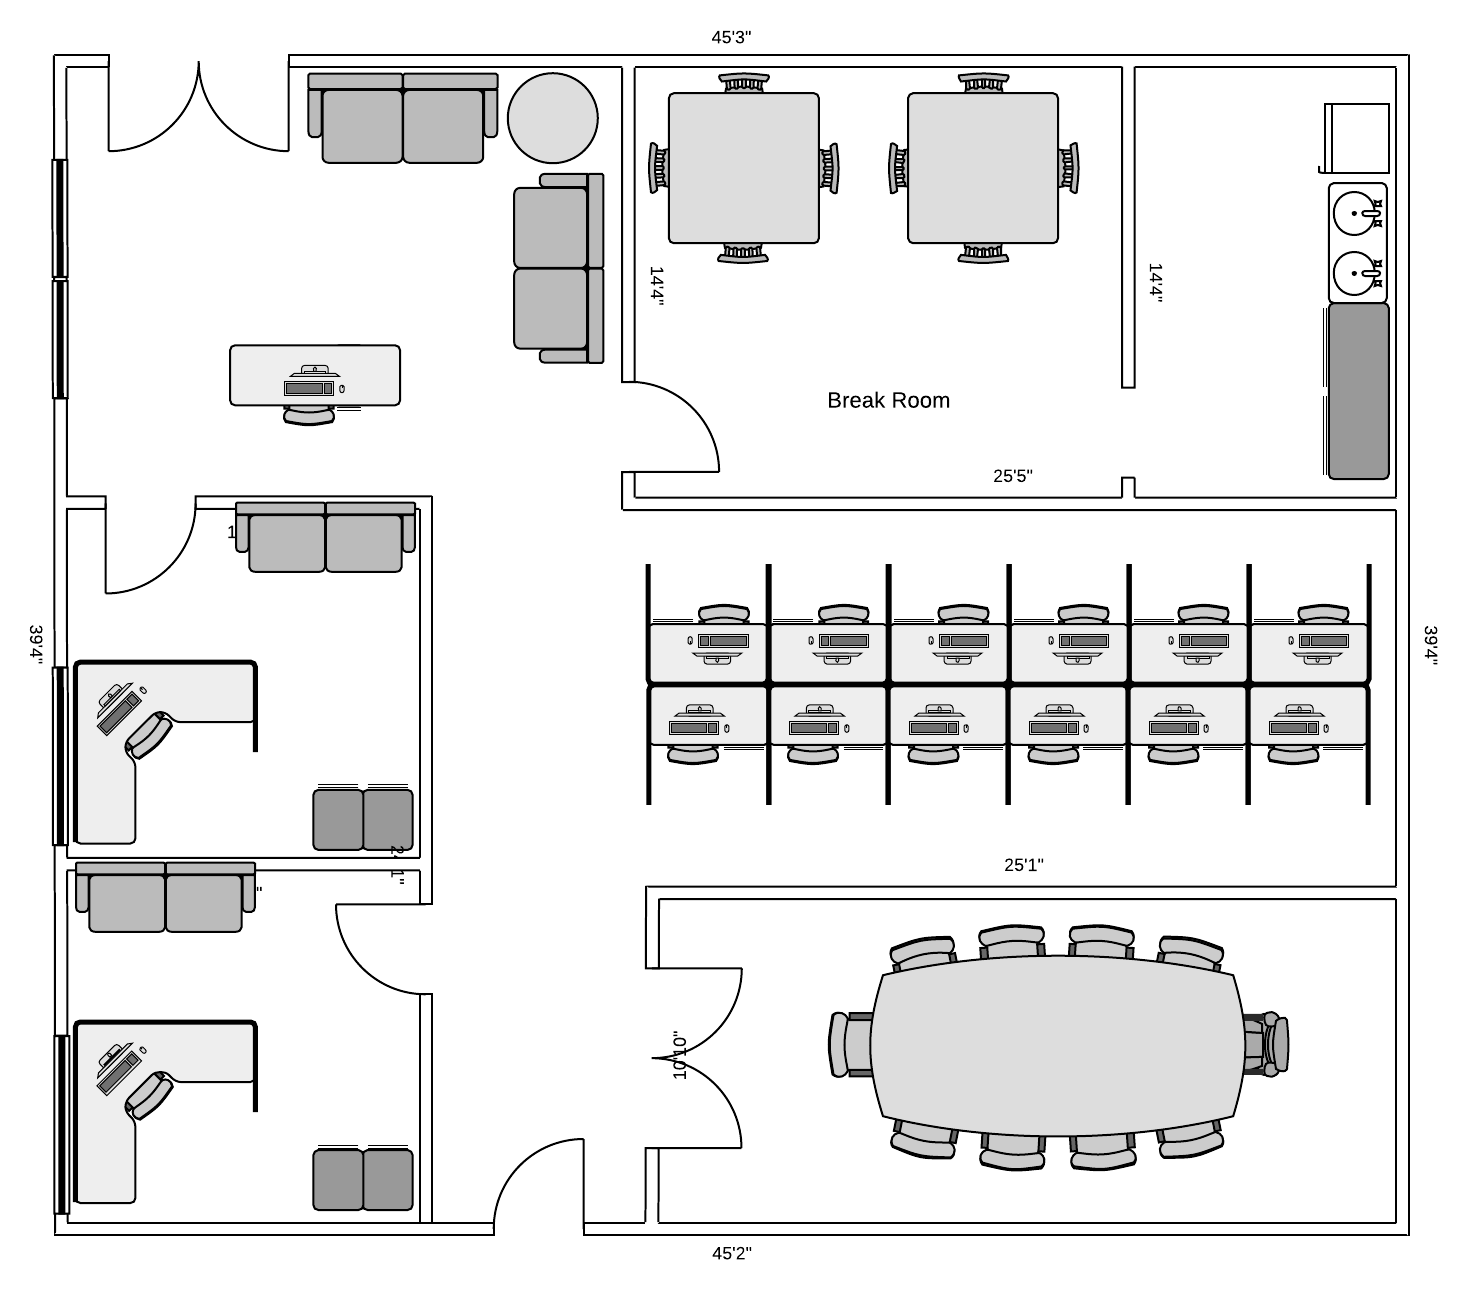 Networking drawing floor plan layout. Diagram your network for